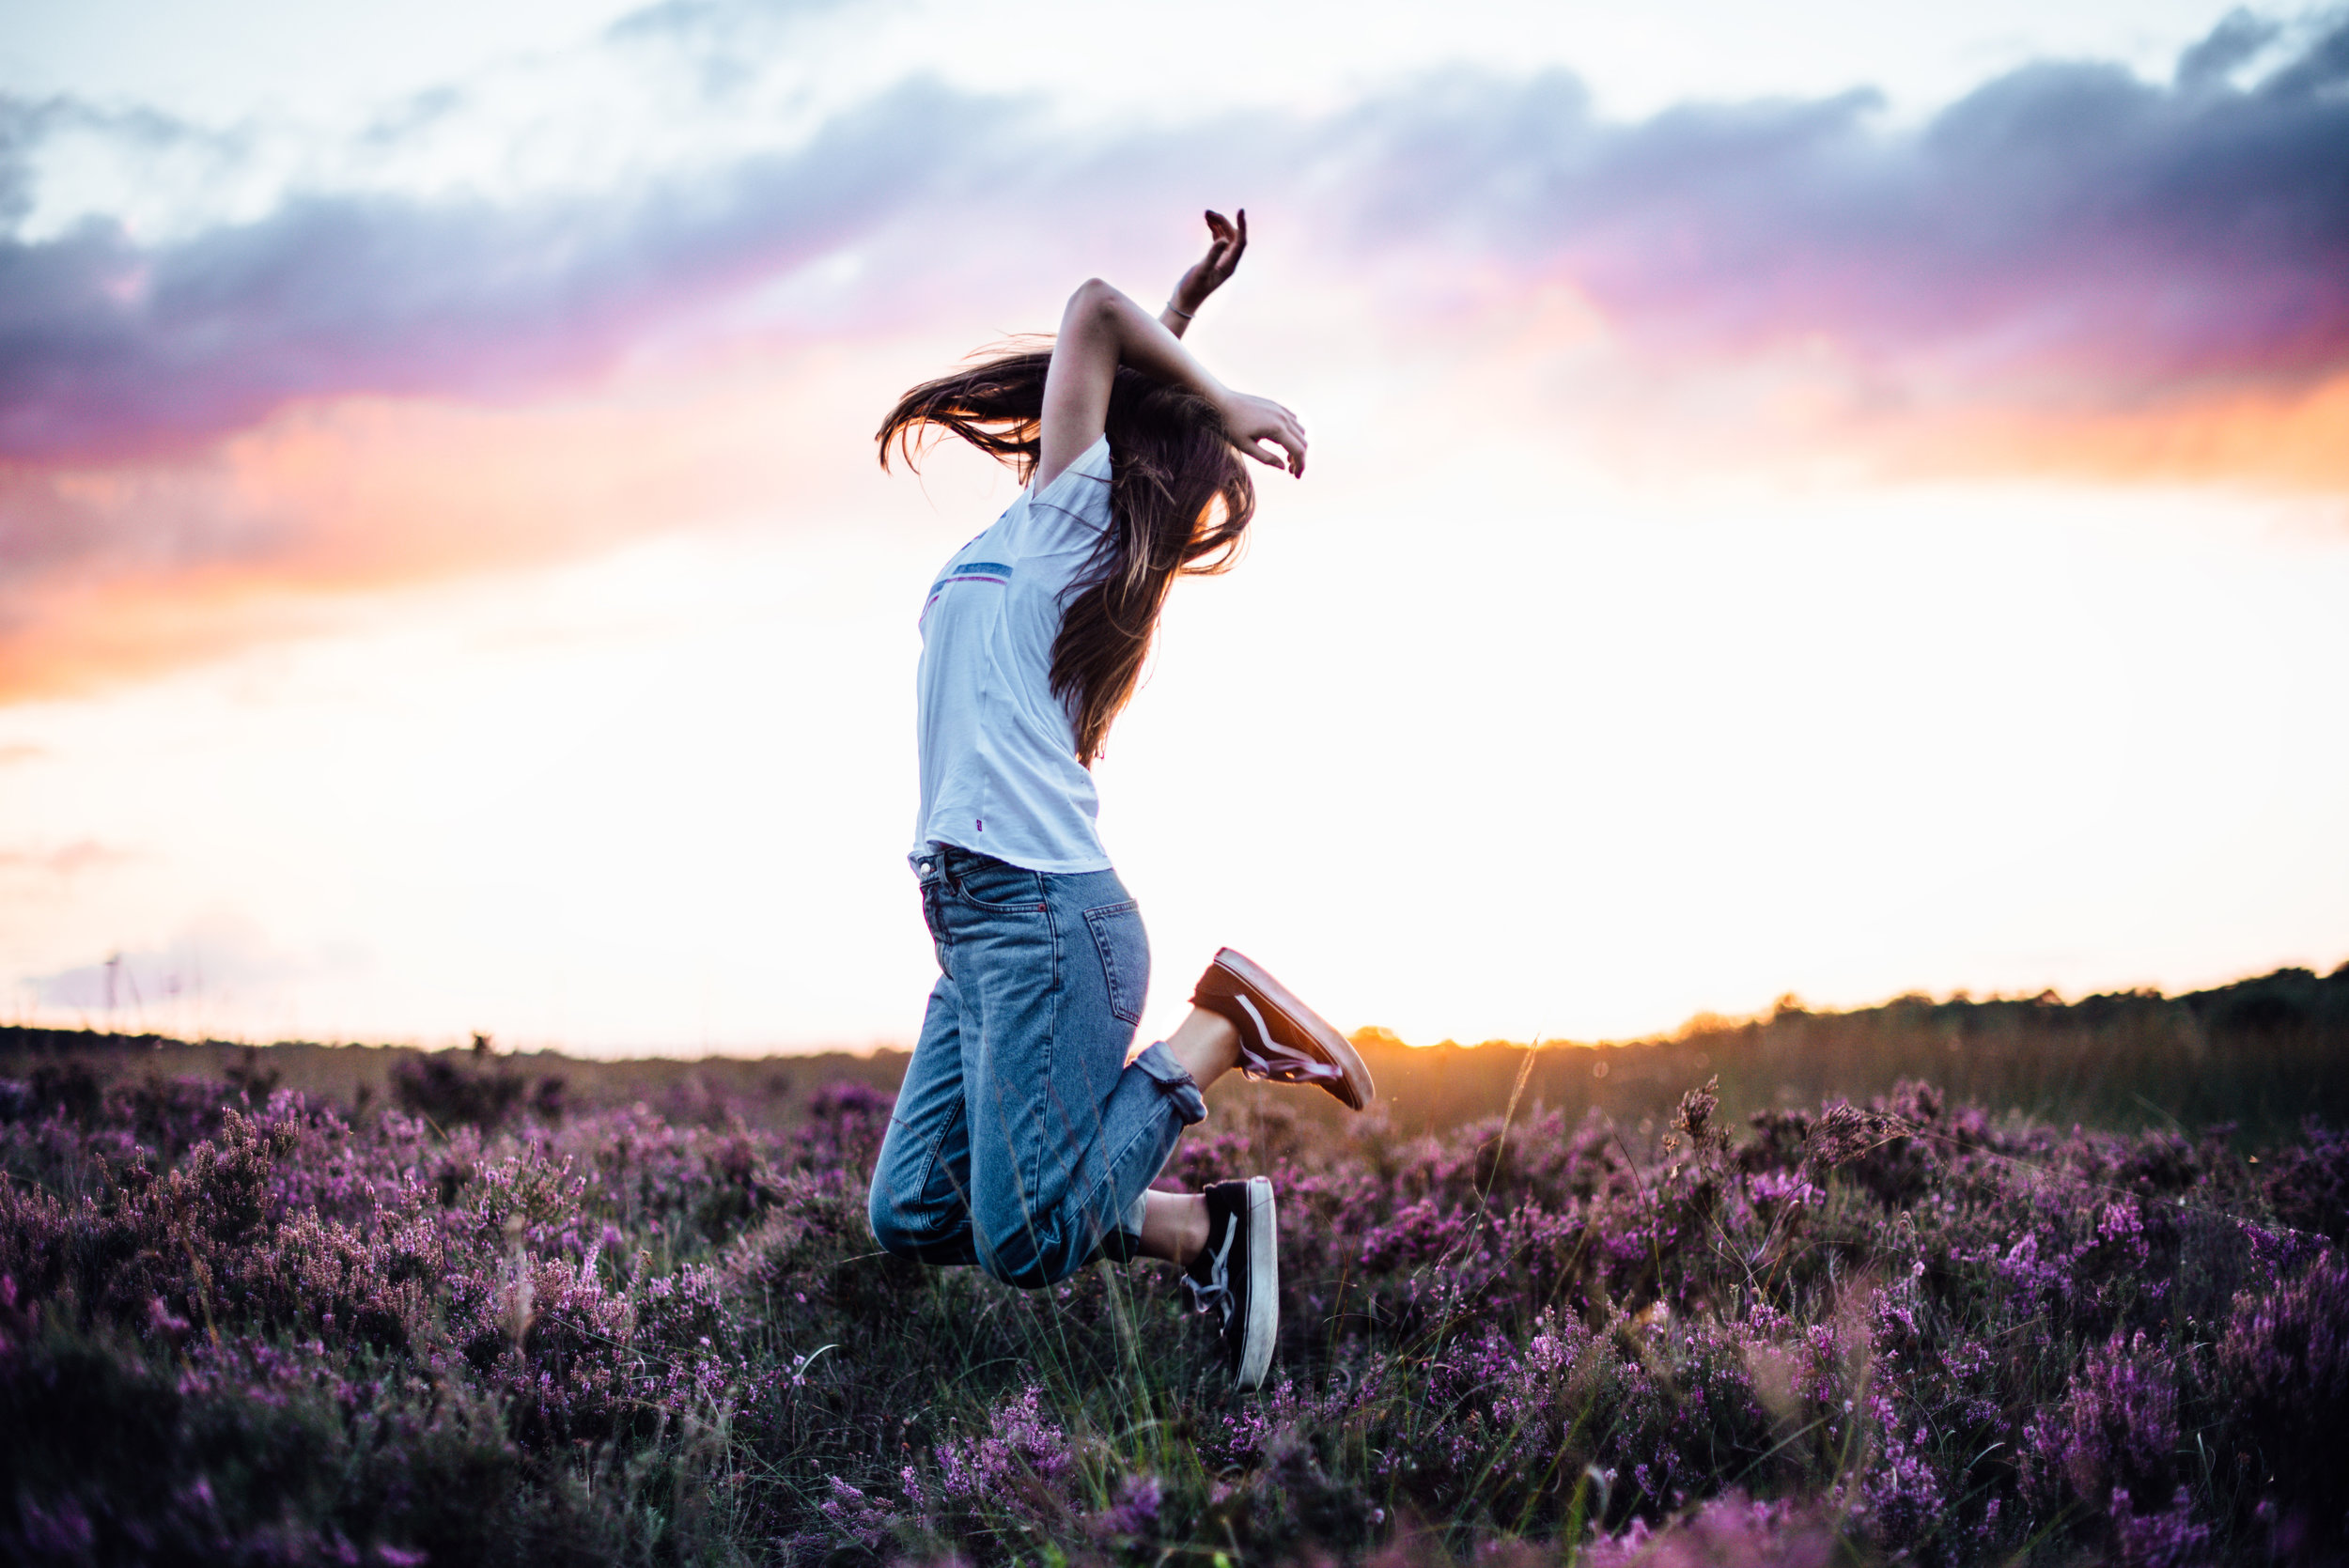 photography-travel-lifestyle-portrait-wedding-münster-fotograf-creative-gretacaptures-young-vibrant-sunset-adventure-fotografin